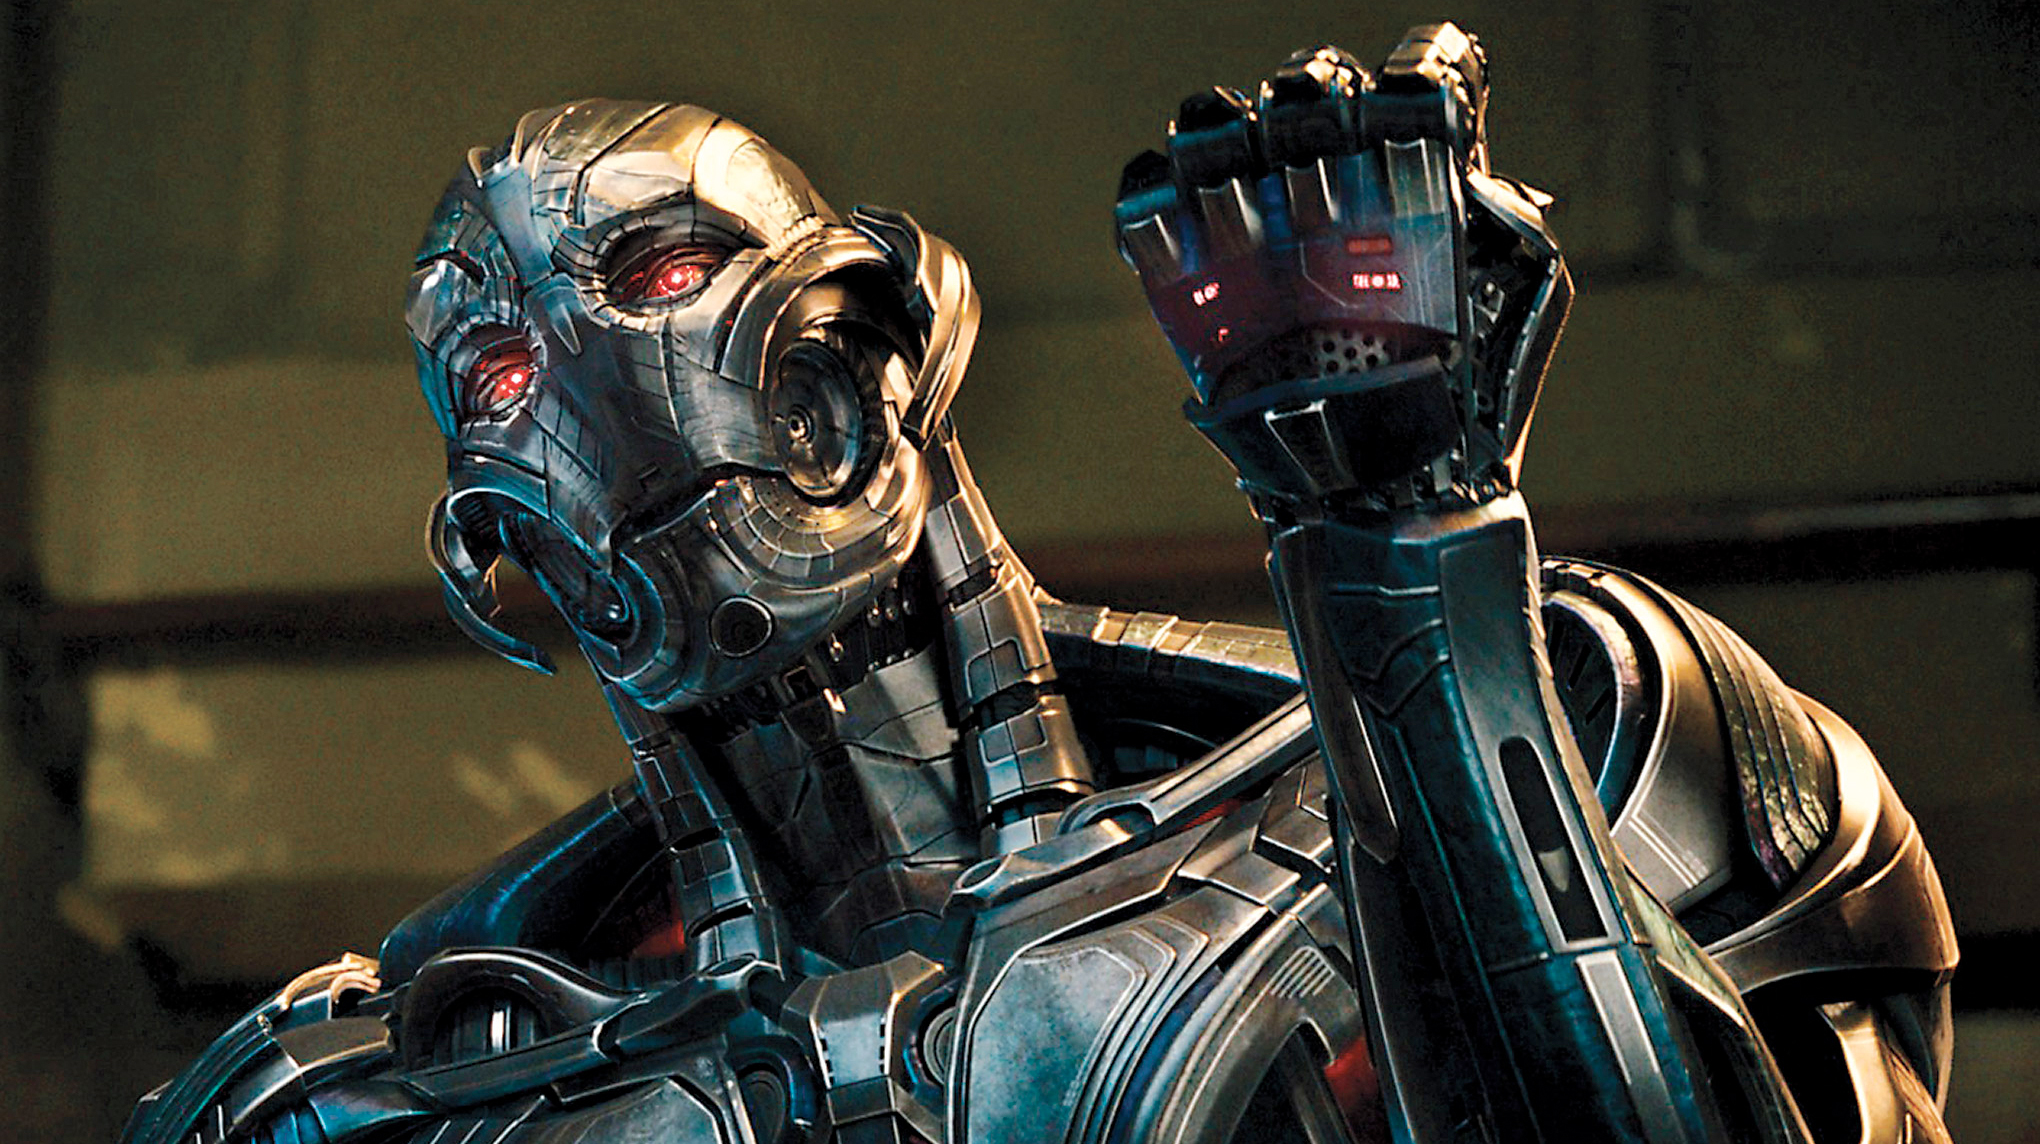 How 'Avengers: Age of Ultron' Cast Has Changed Since First ... |Ultron Avengers Age Of Ultron